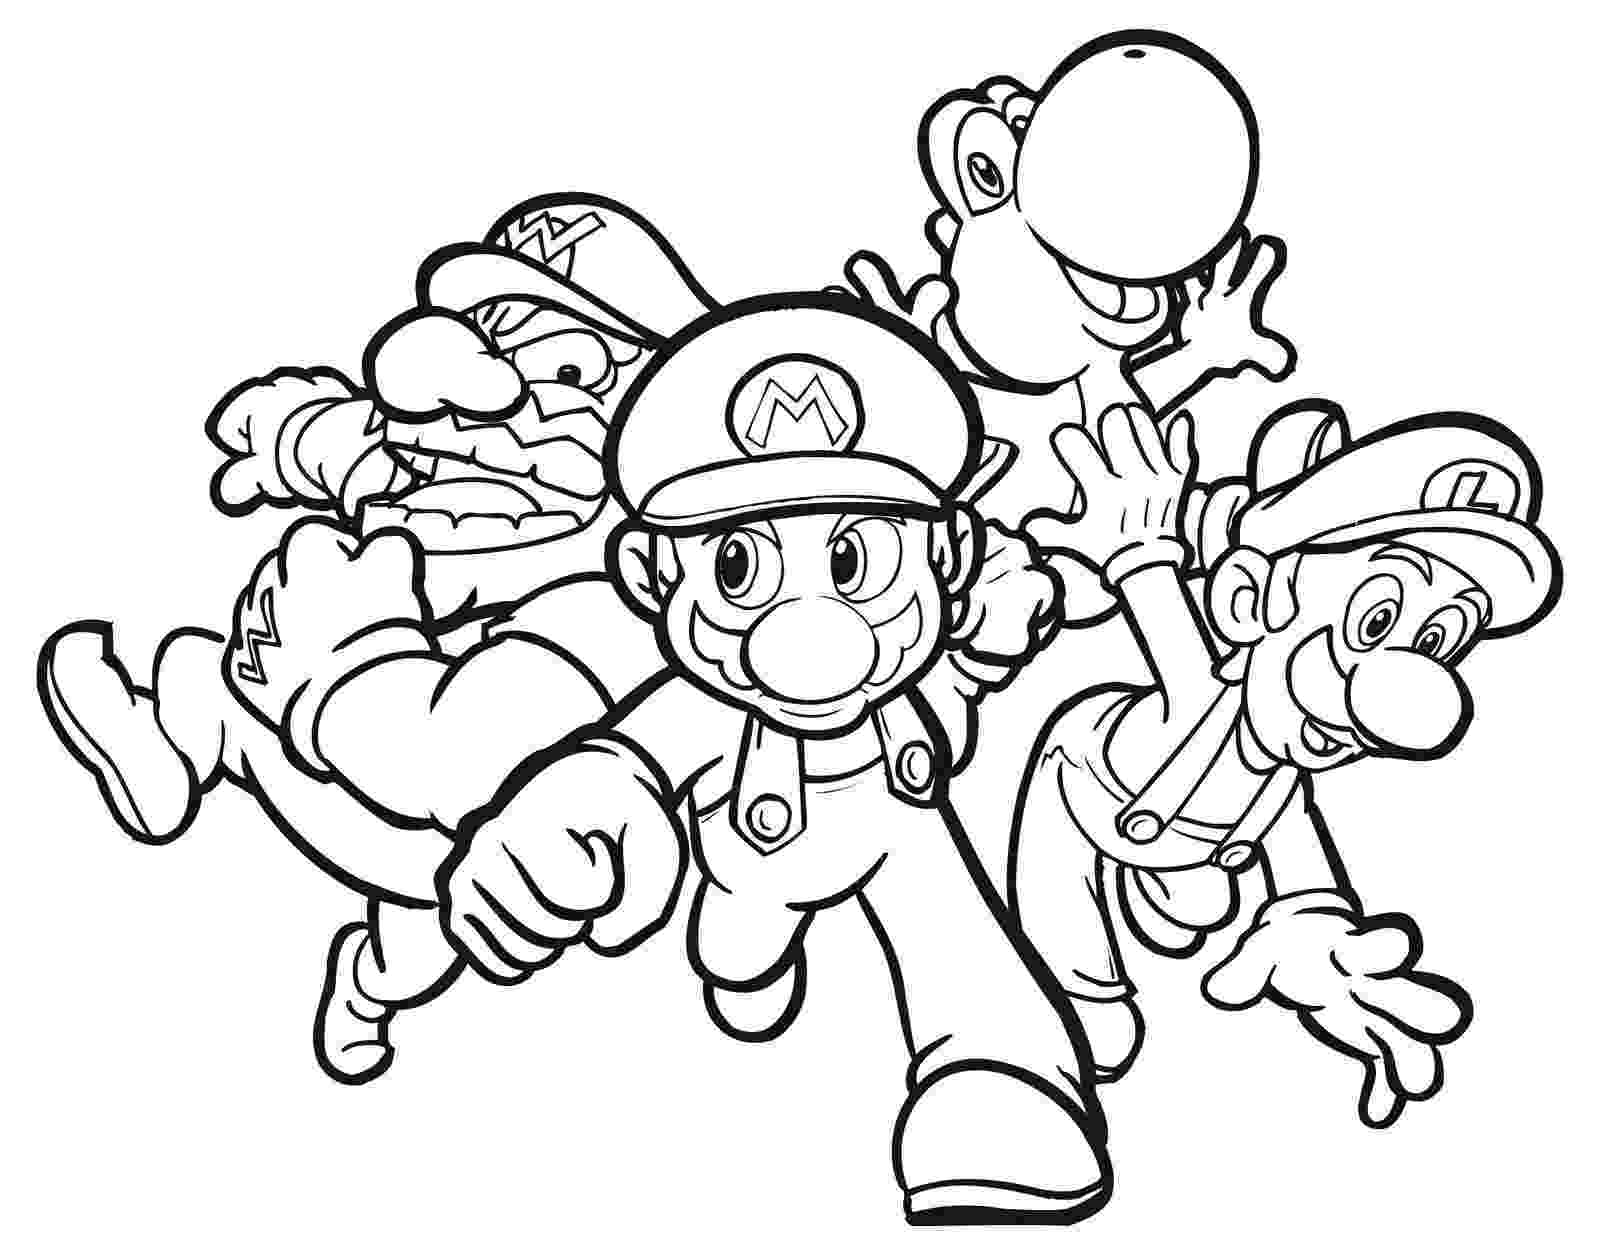 super mario bros pictures to print and colour luigi from mario bros coloring page free printable super colour and bros pictures print mario to